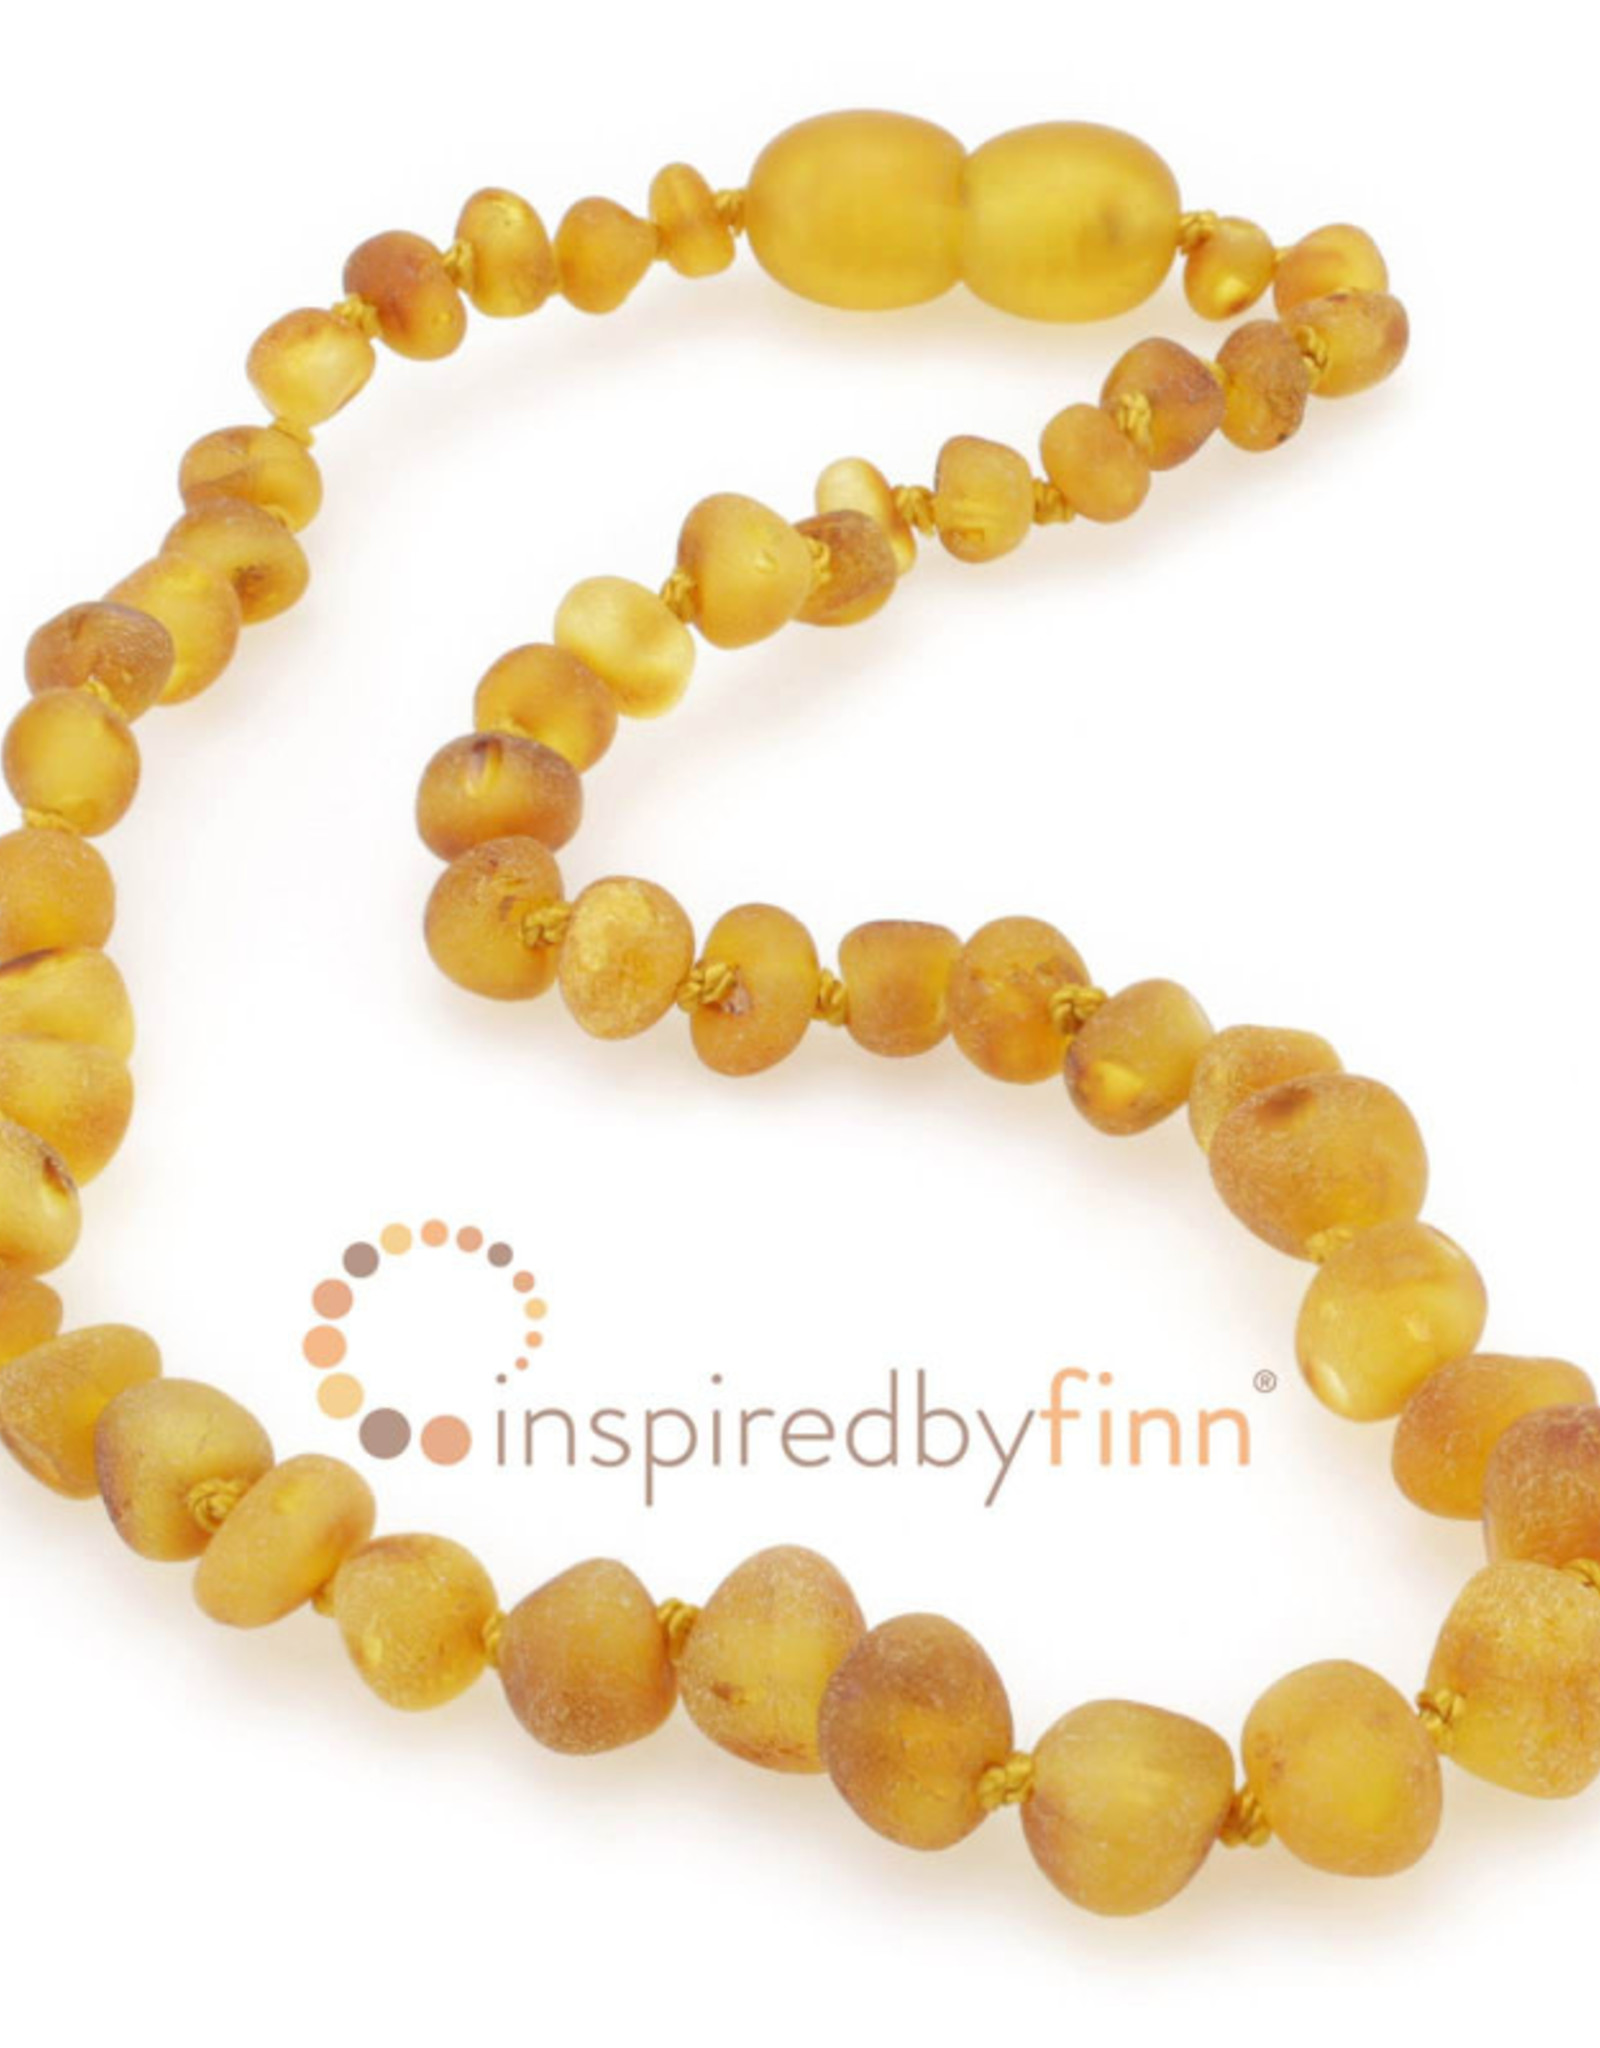 Inspired by Finn Baltic Amber